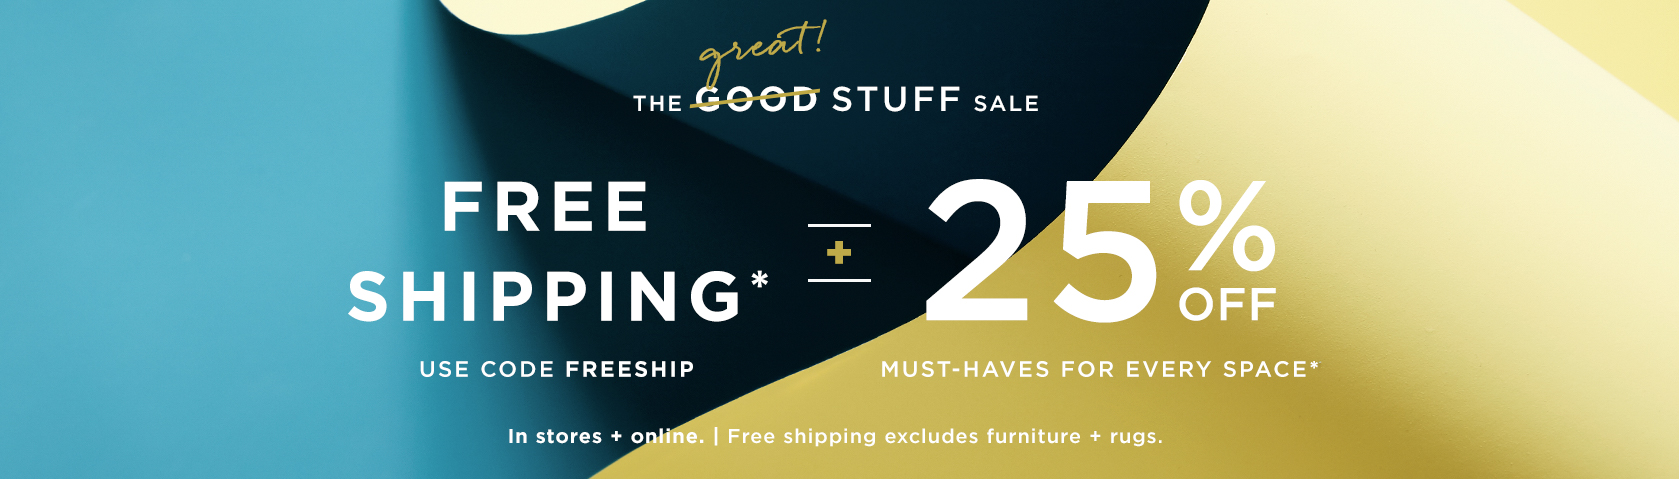 Free Shipping with code FREESHIP + 25% Off Must-Haves For Every Space